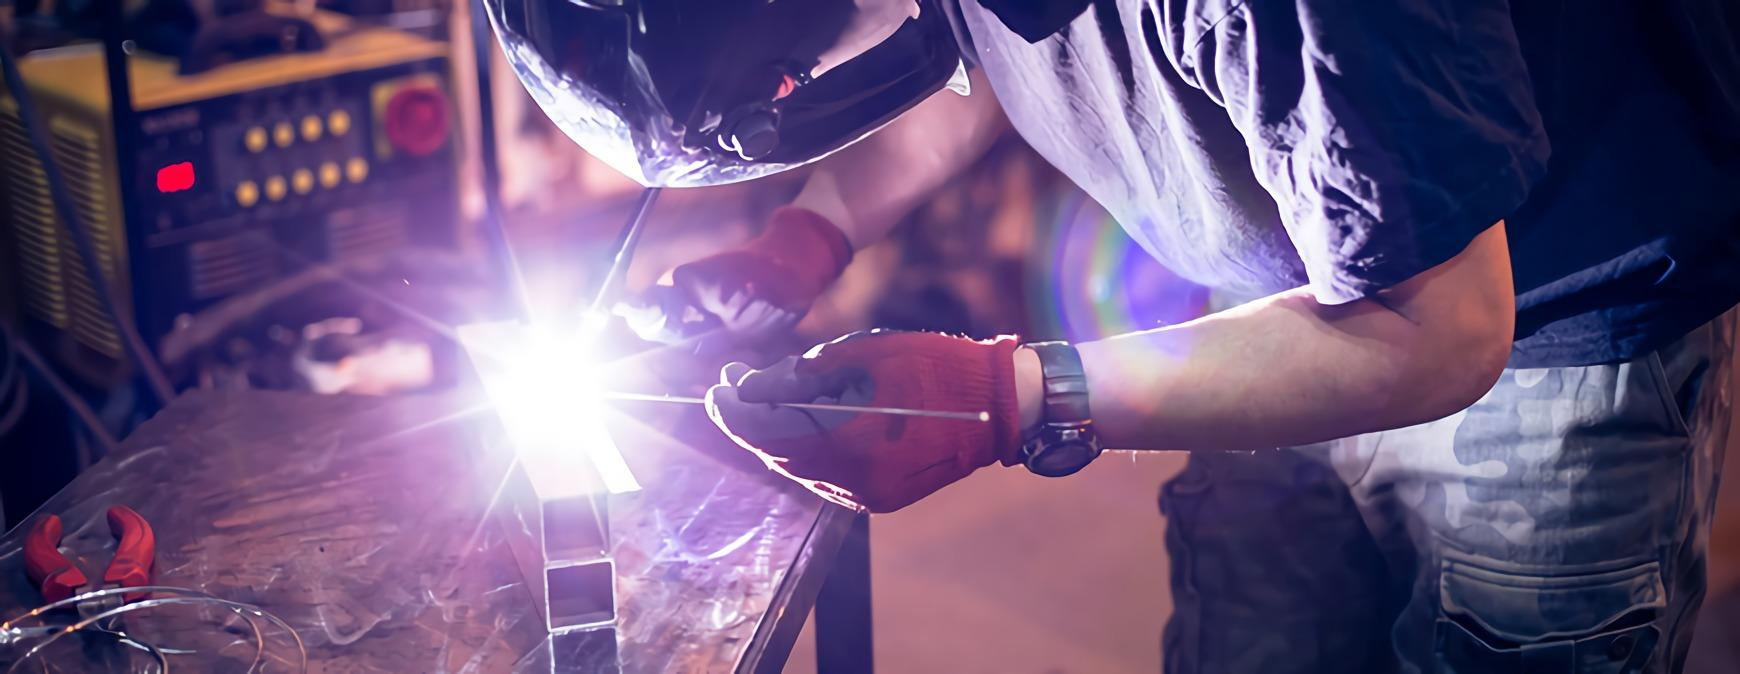 welder working on aluminum